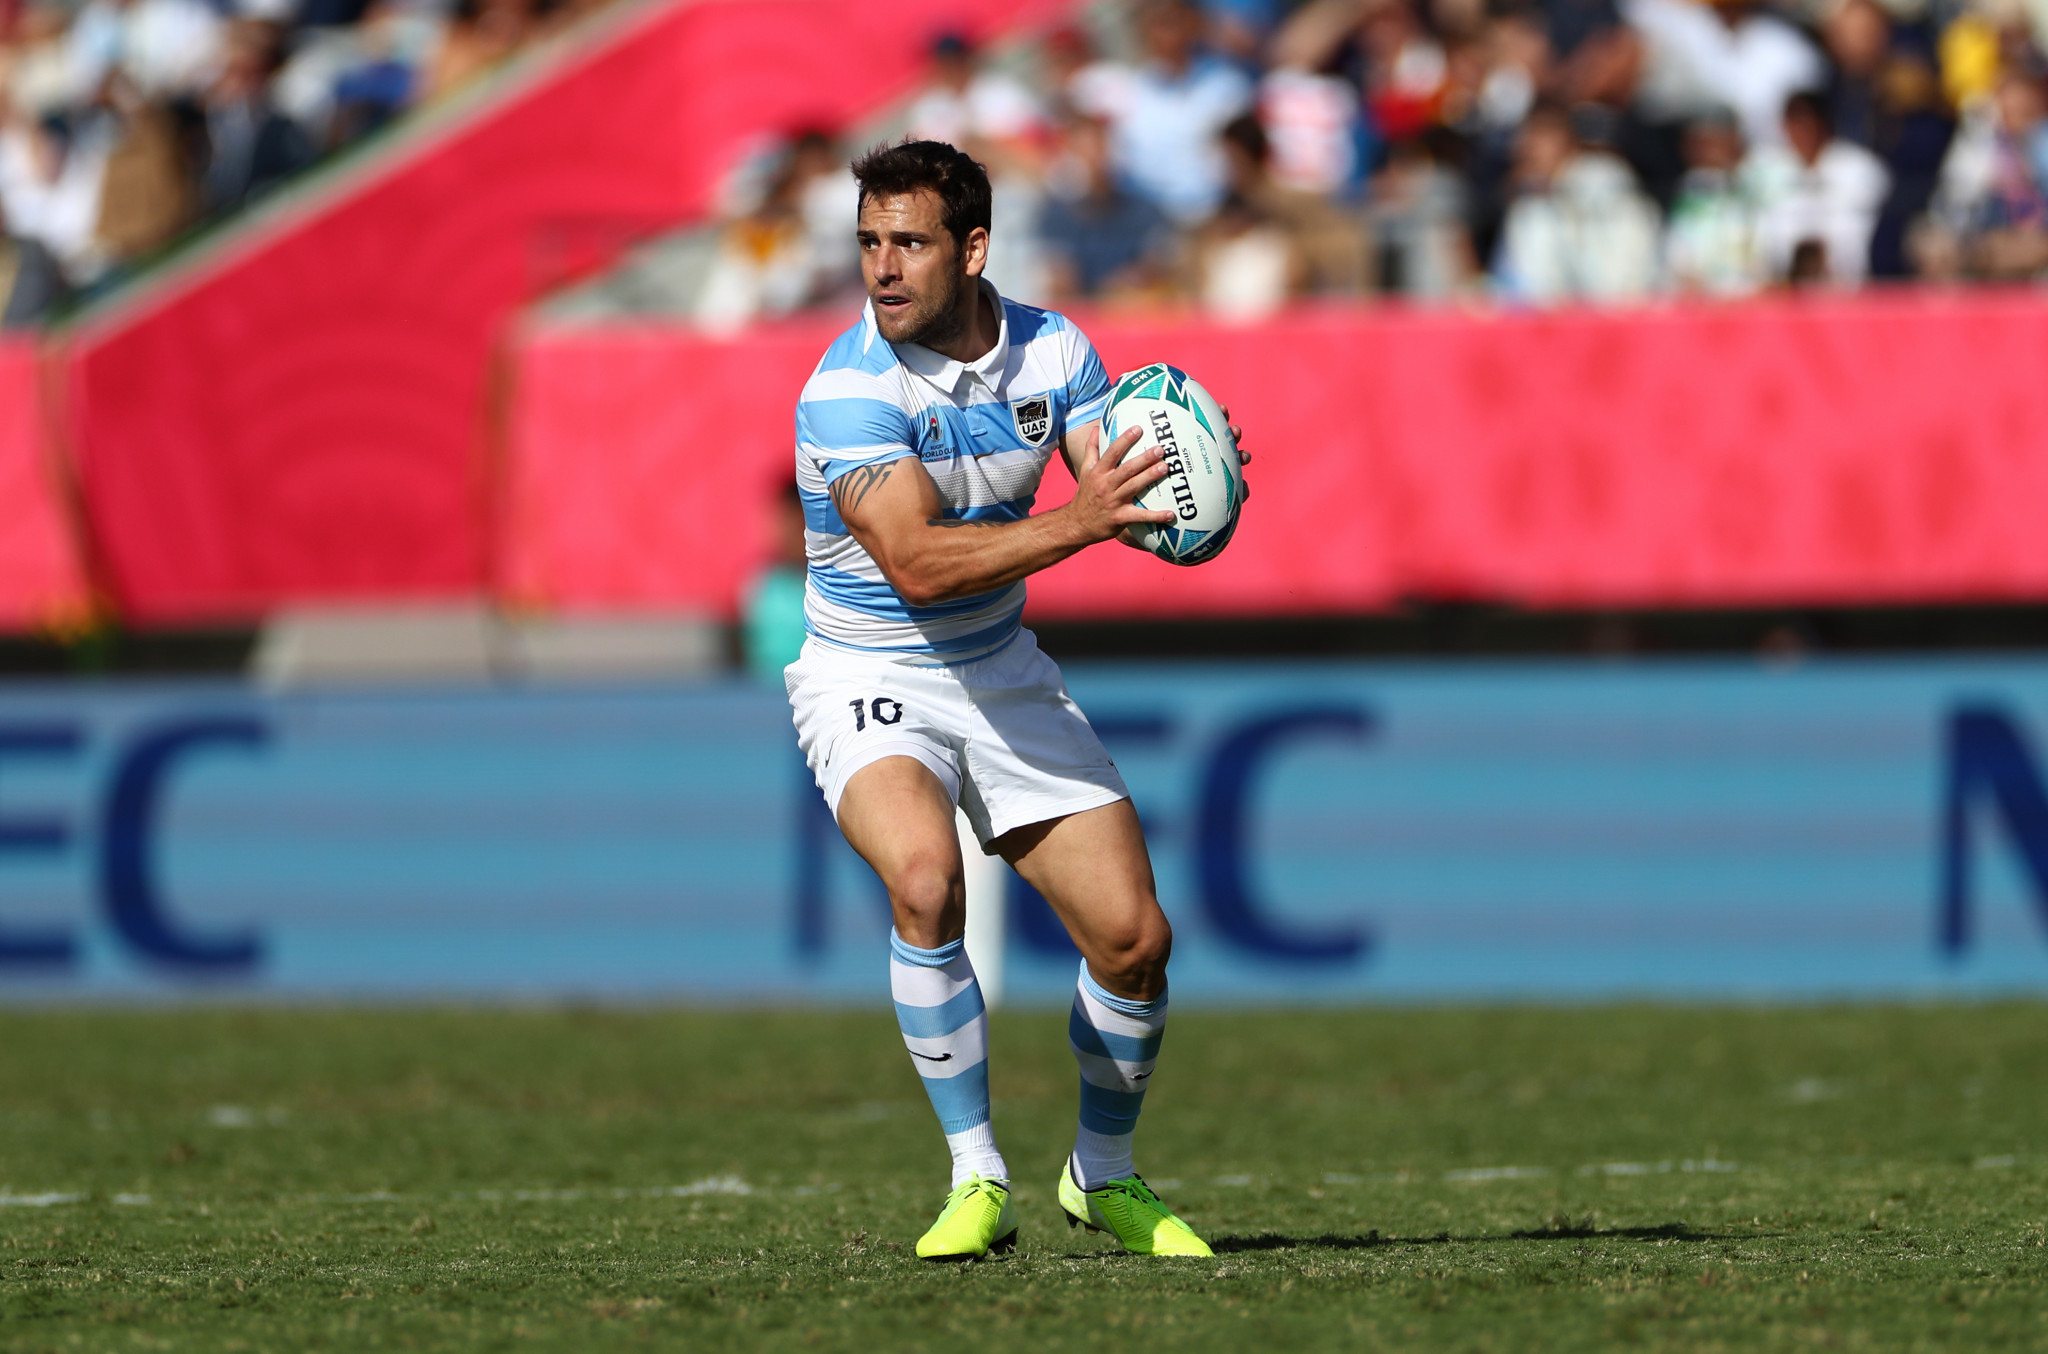 Argentina withdraw 2027 Rugby World Cup bid to strengthen Australian campaign